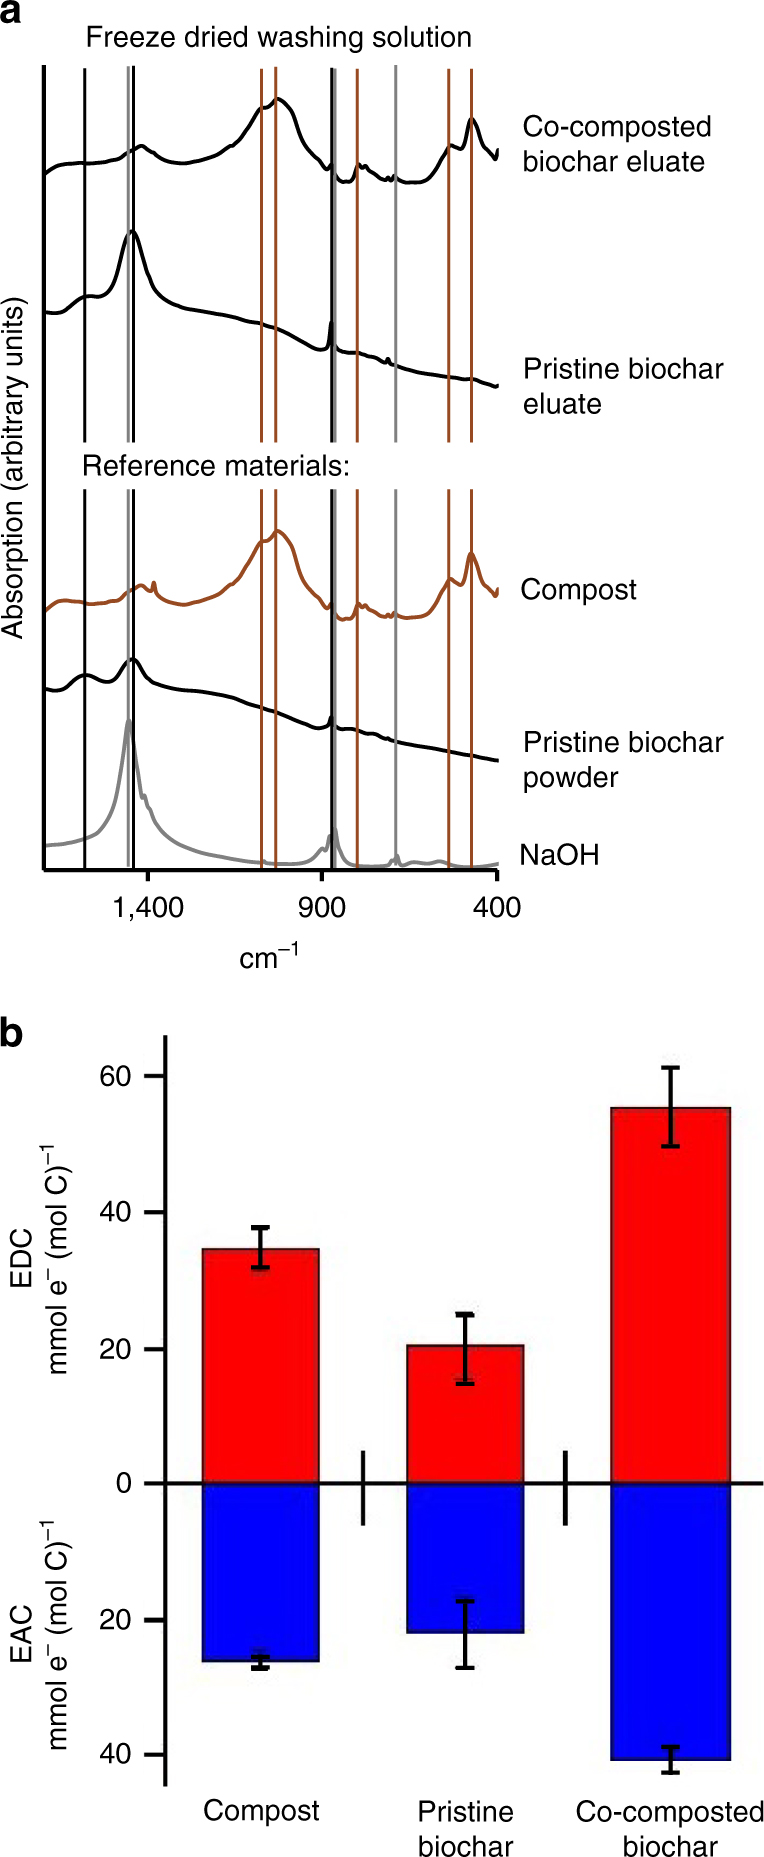 Organic Coating On Biochar Explains Its Nutrient Retention And Shaker 500 Wiring Diagram Ex Situ Analysis Of The Extracted From With 005 M Naoh A Fourier Transformed Infrared Ftir Spectra Freeze Dried Eluates